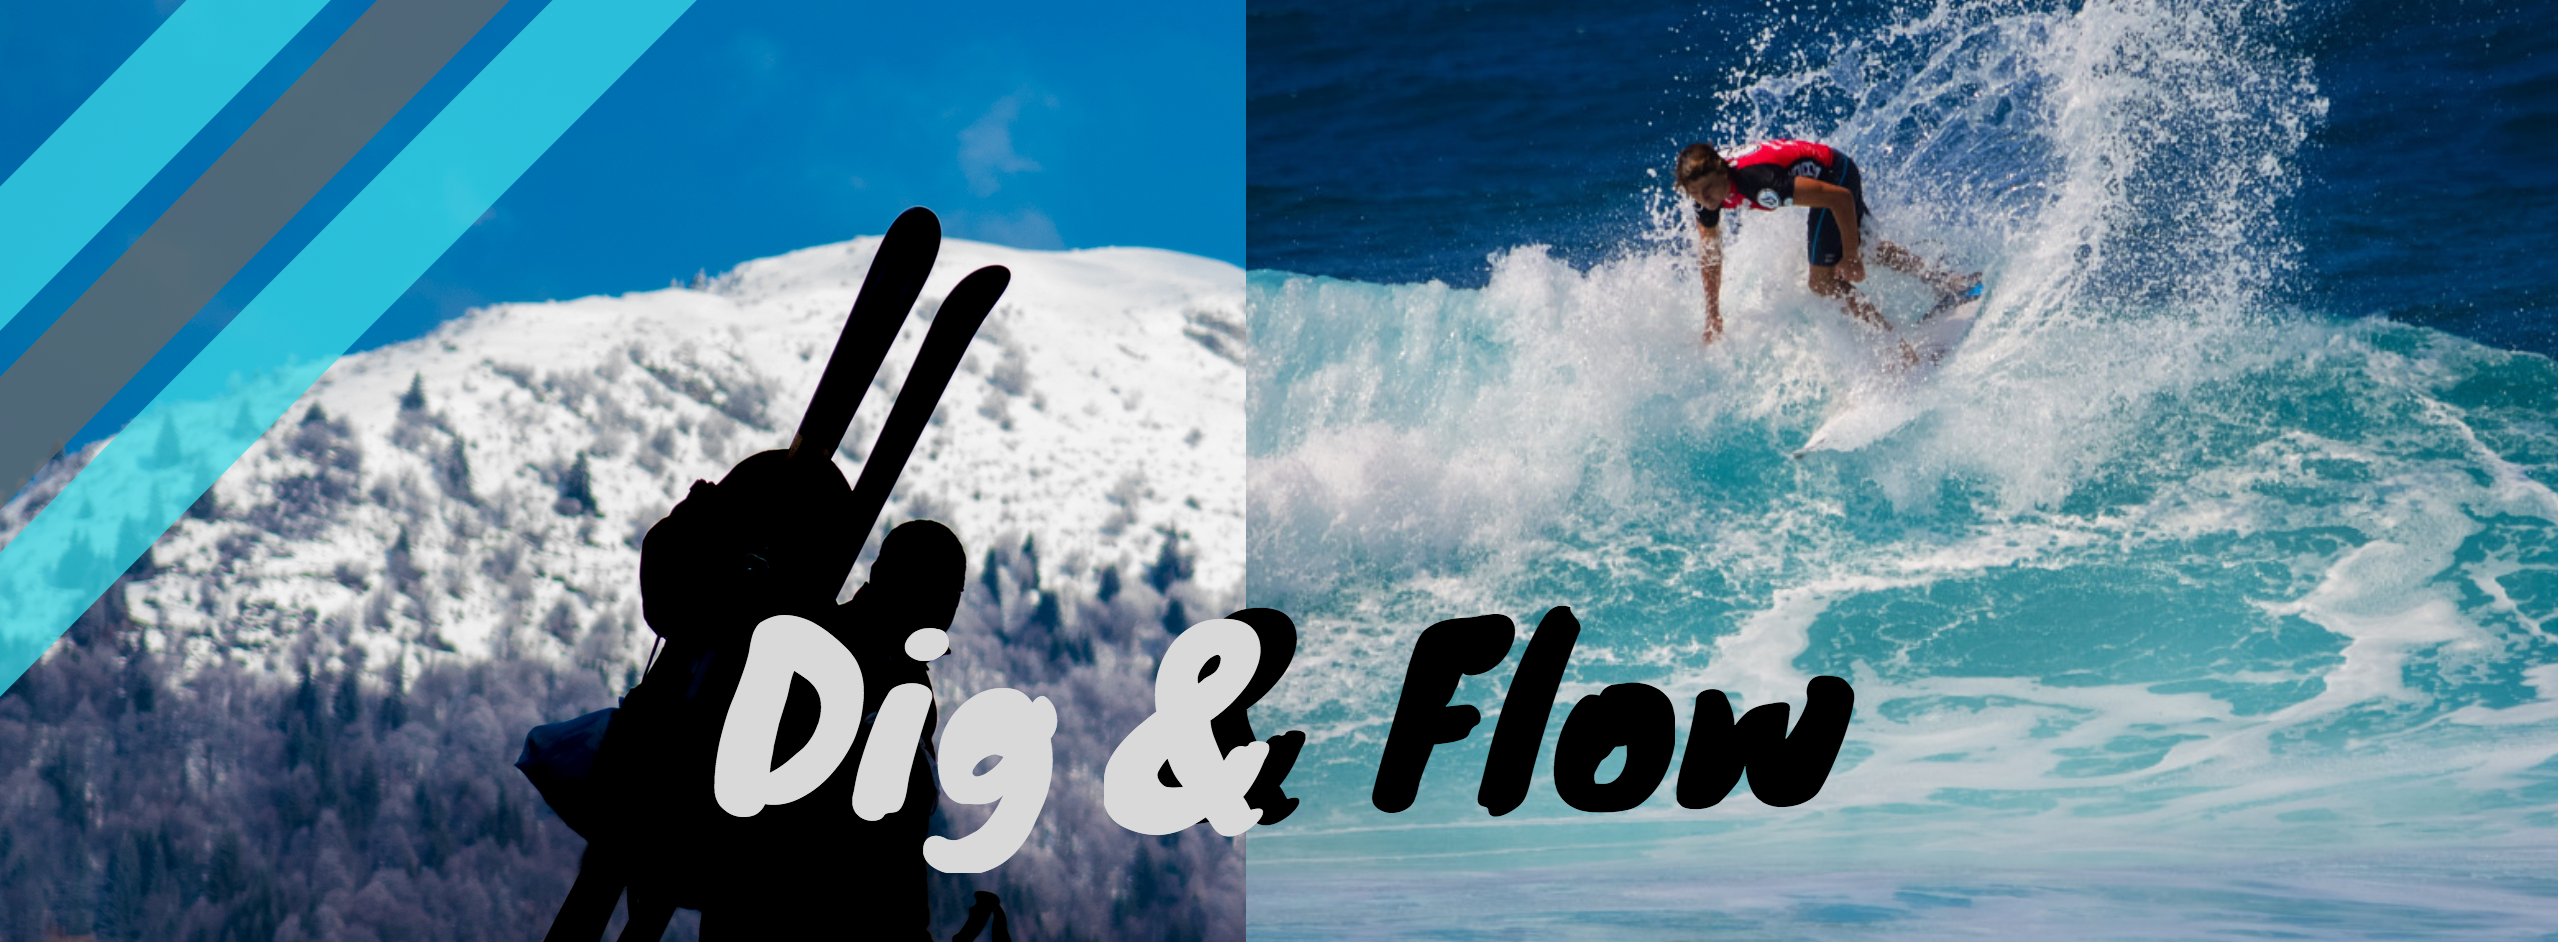 Dig and Flow